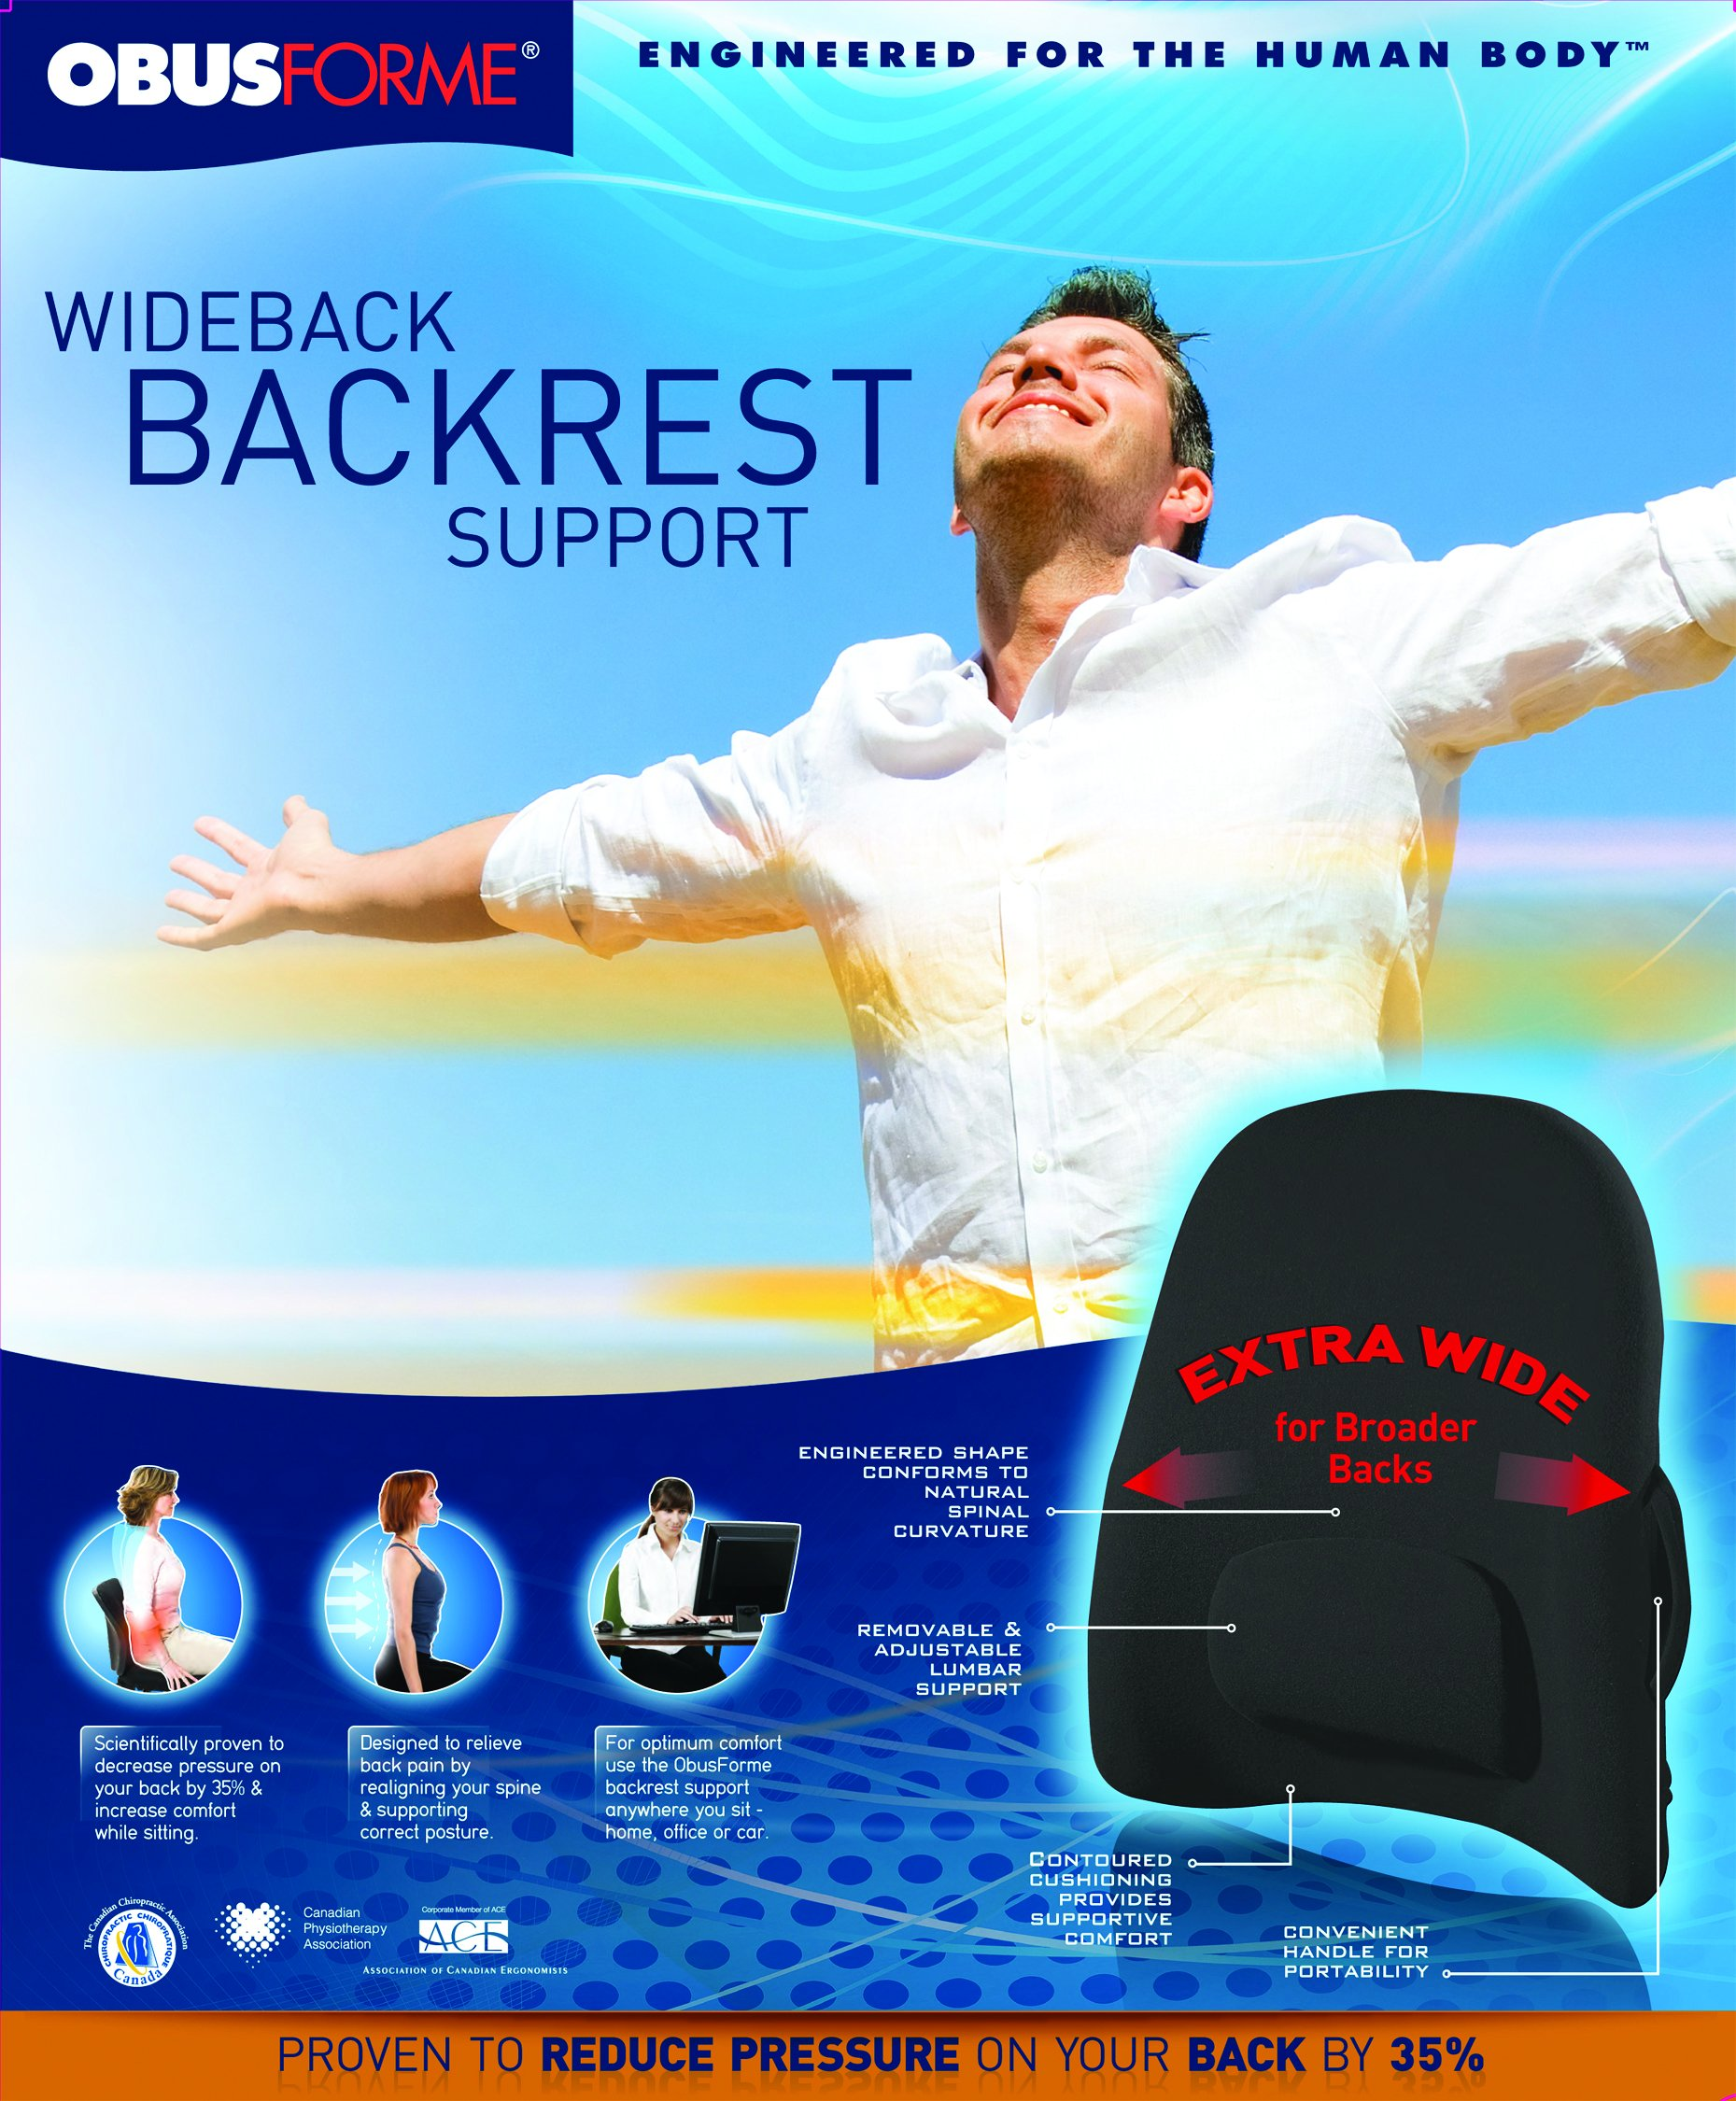 ObusForme Wideback Backrest Support Engineered For The Human Body, Removable & Adjustable Lumbar Support, Reduce Pressure On Your Back, Extra Wide For Broader Backs, S Shape Back Support by ObusForme (Image #4)